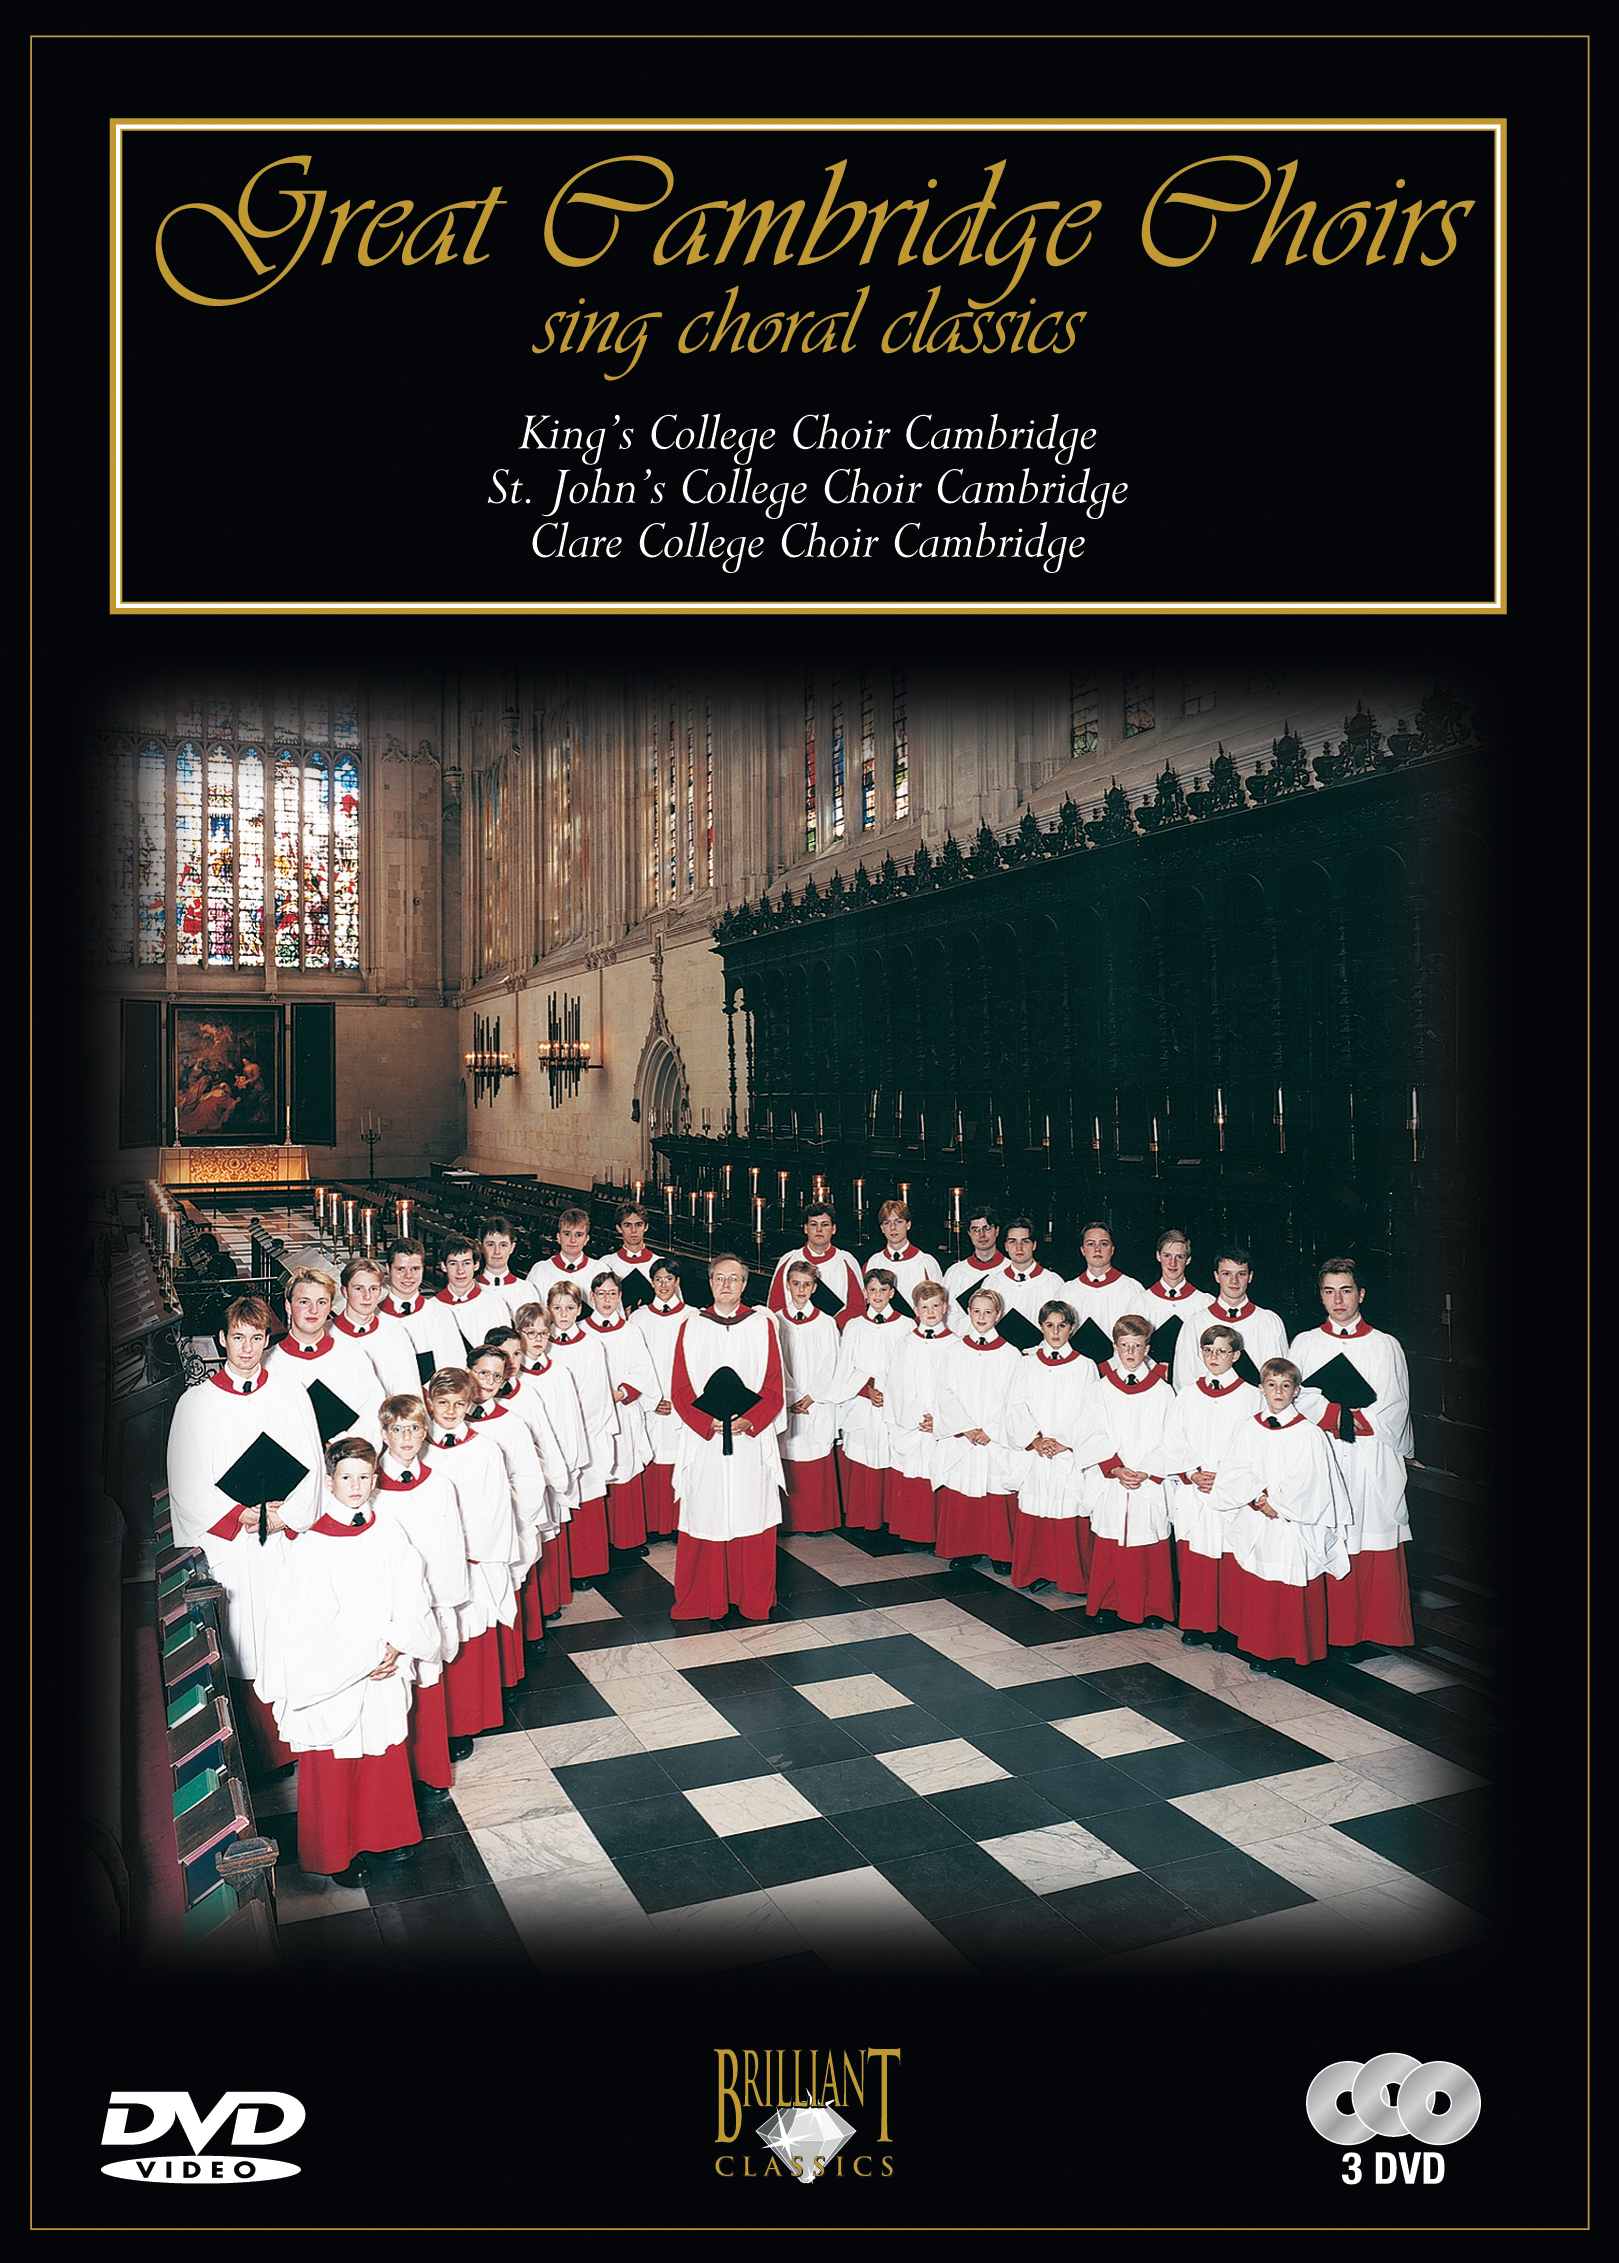 Great Cambridge Choirs